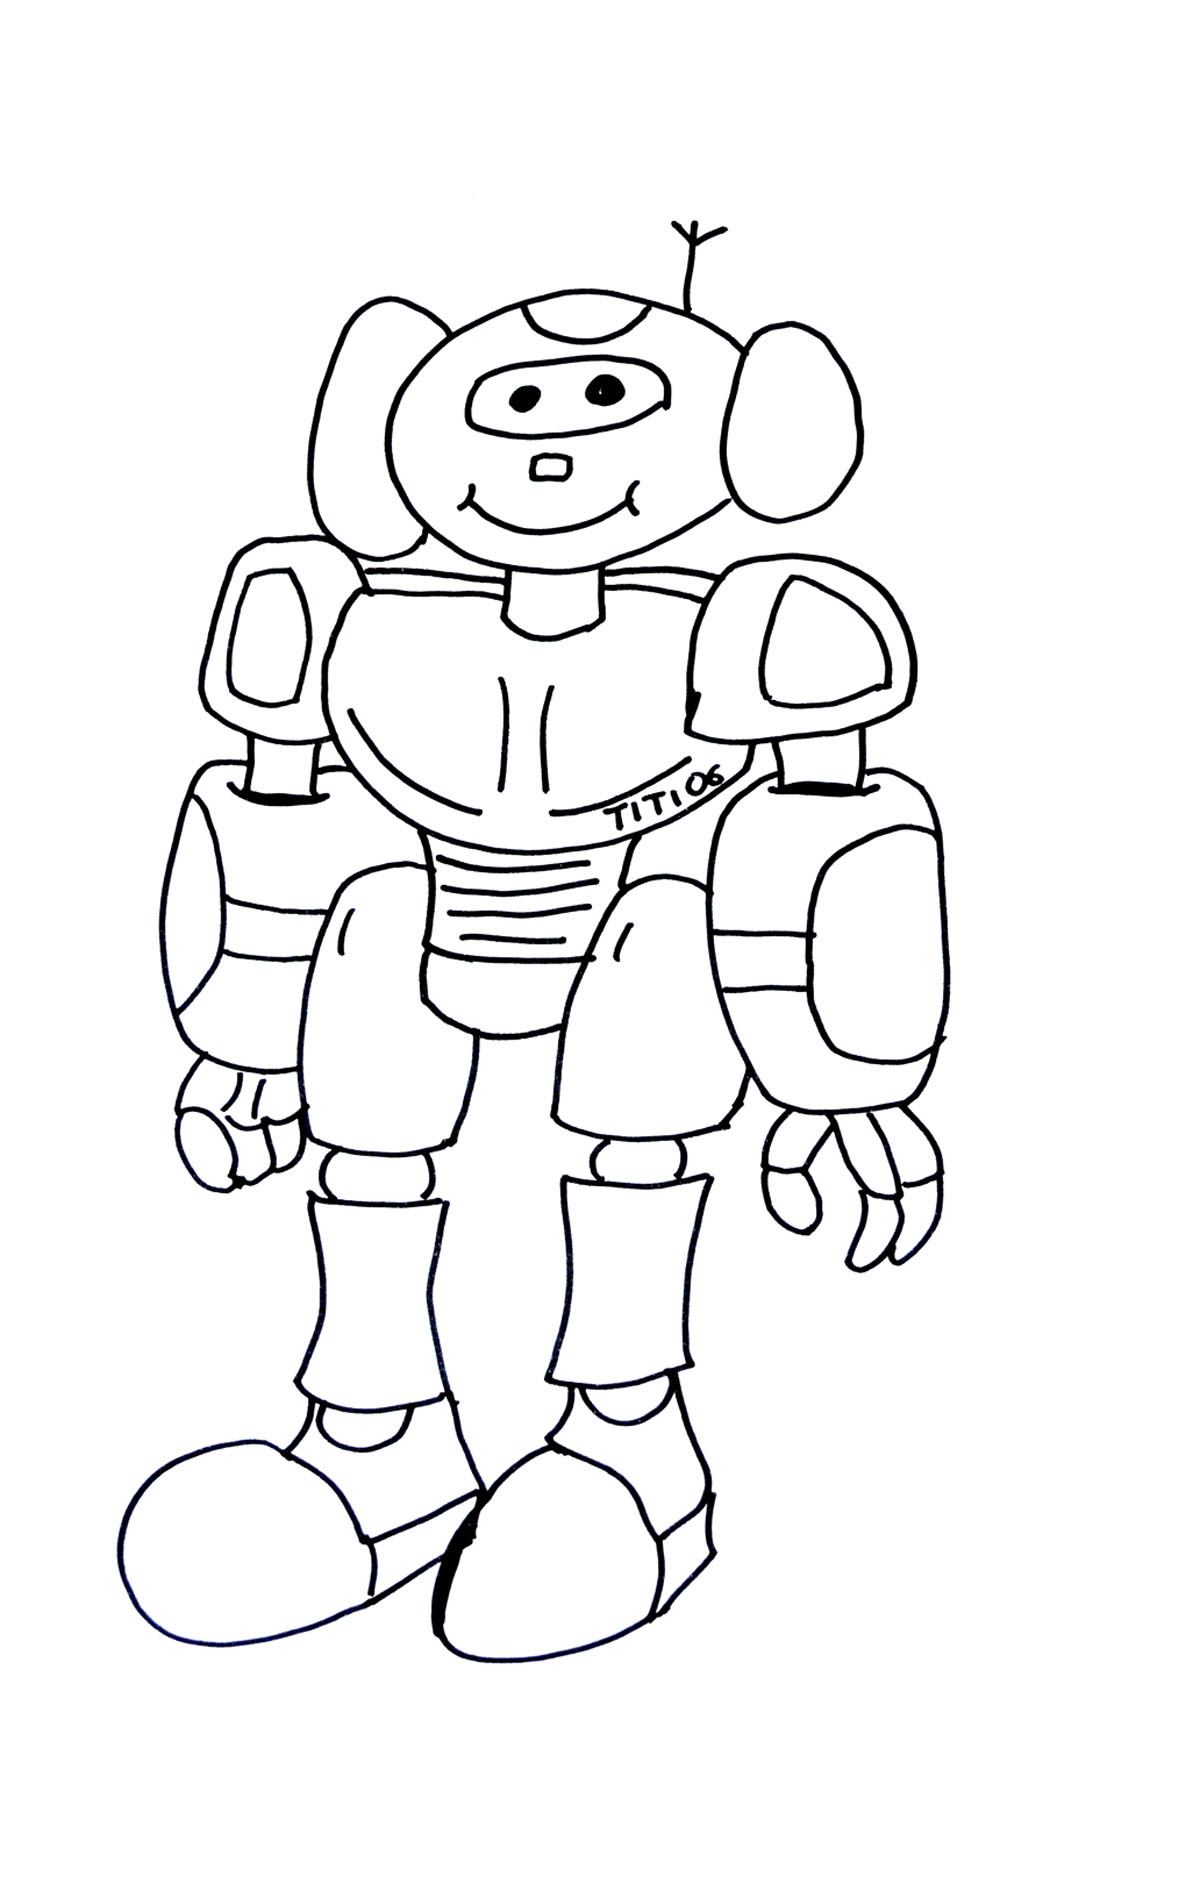 funny robot robots coloring pages for kids to print color. Black Bedroom Furniture Sets. Home Design Ideas